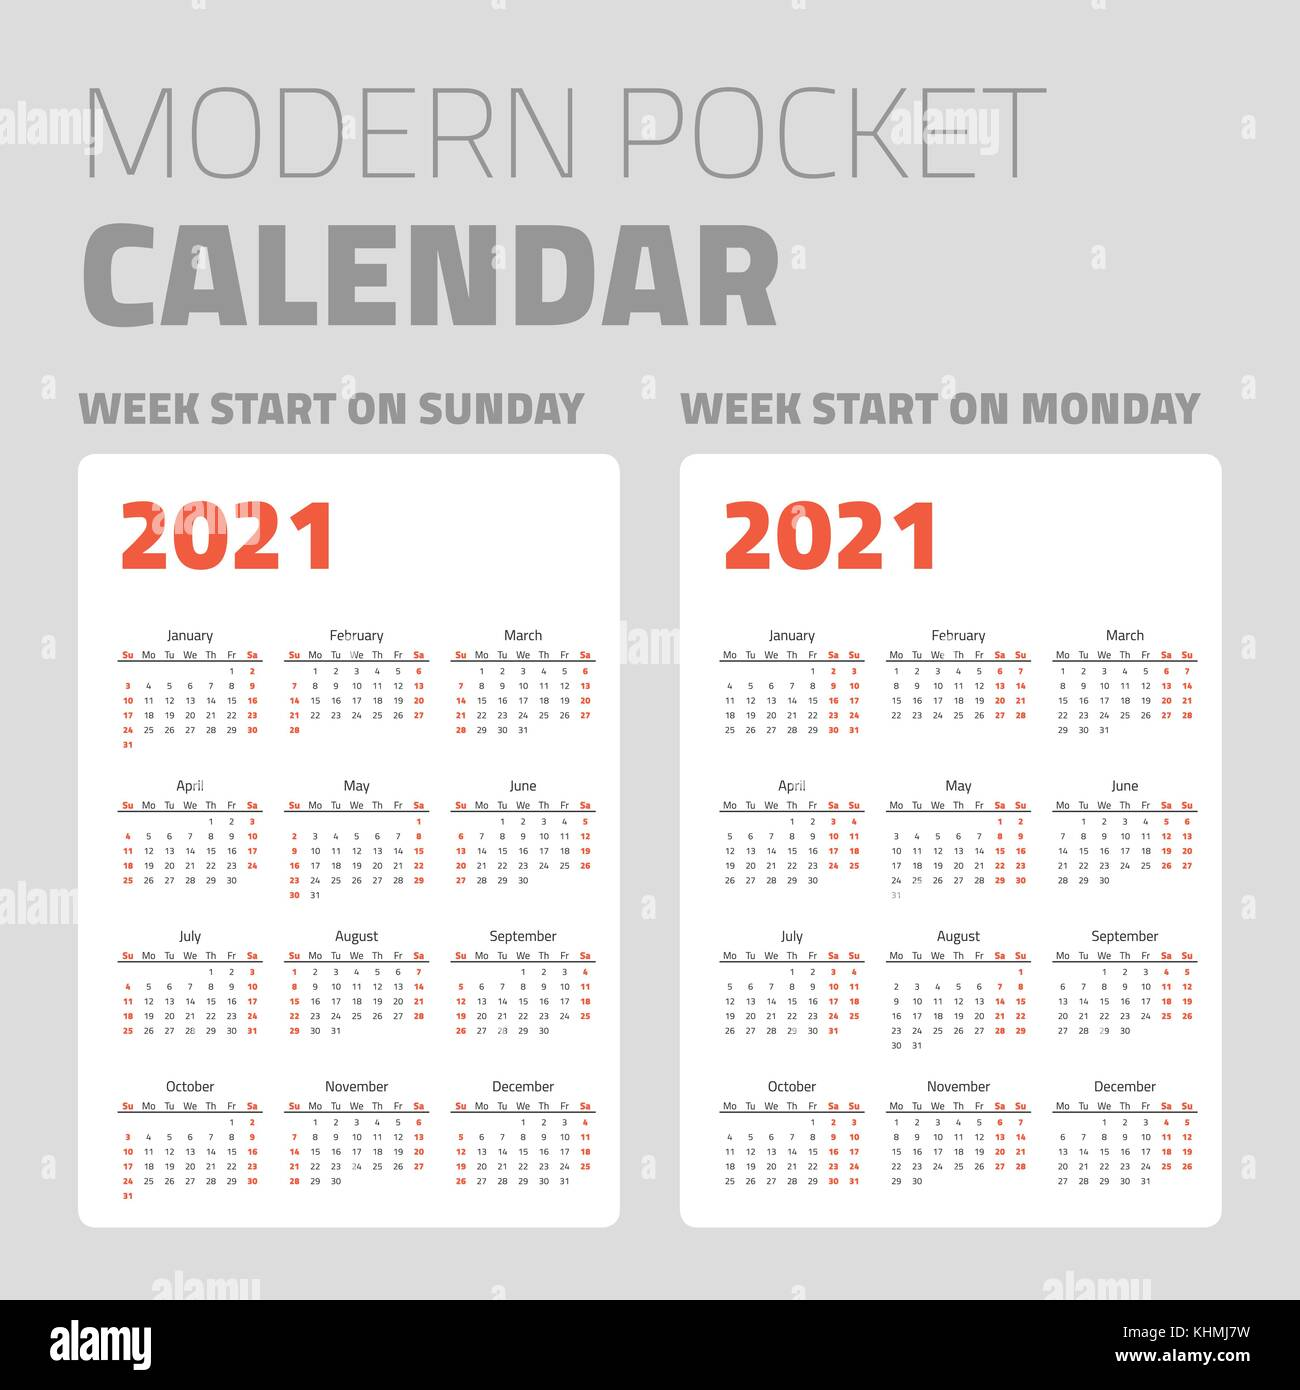 Modern pocket calendar set 2021 Stock Vector Image & Art   Alamy